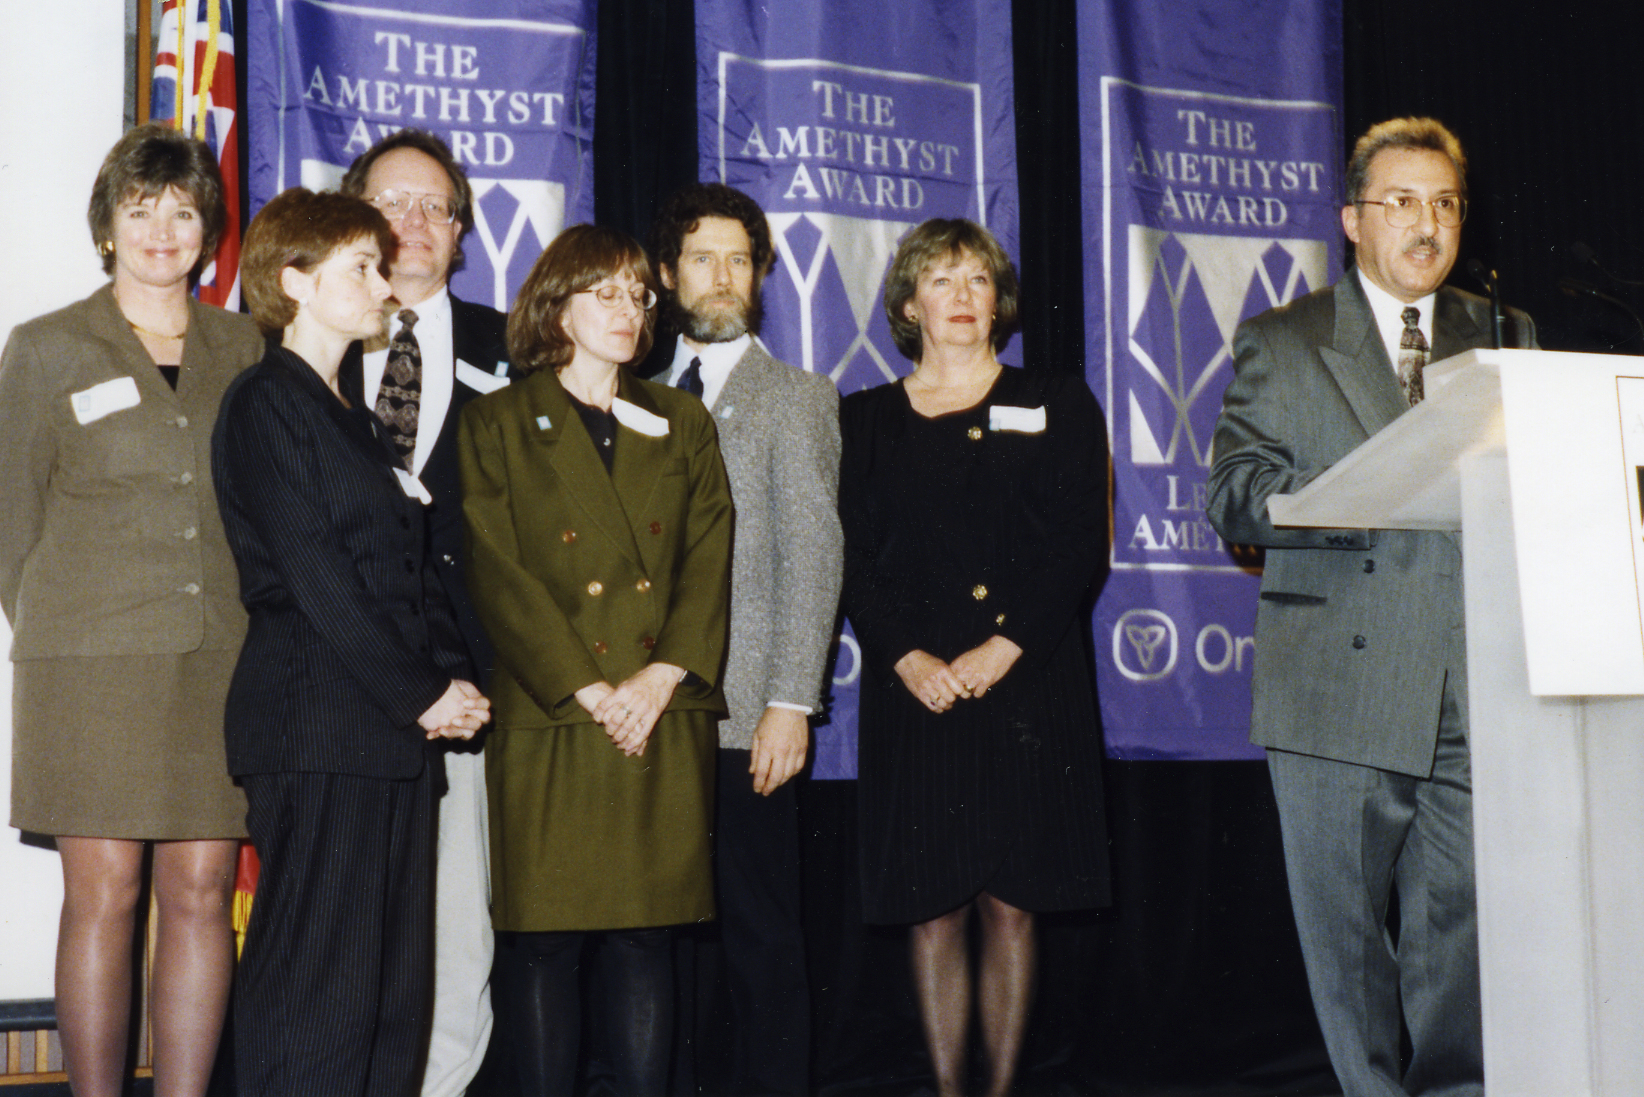 Research Department receives Amethyst Award